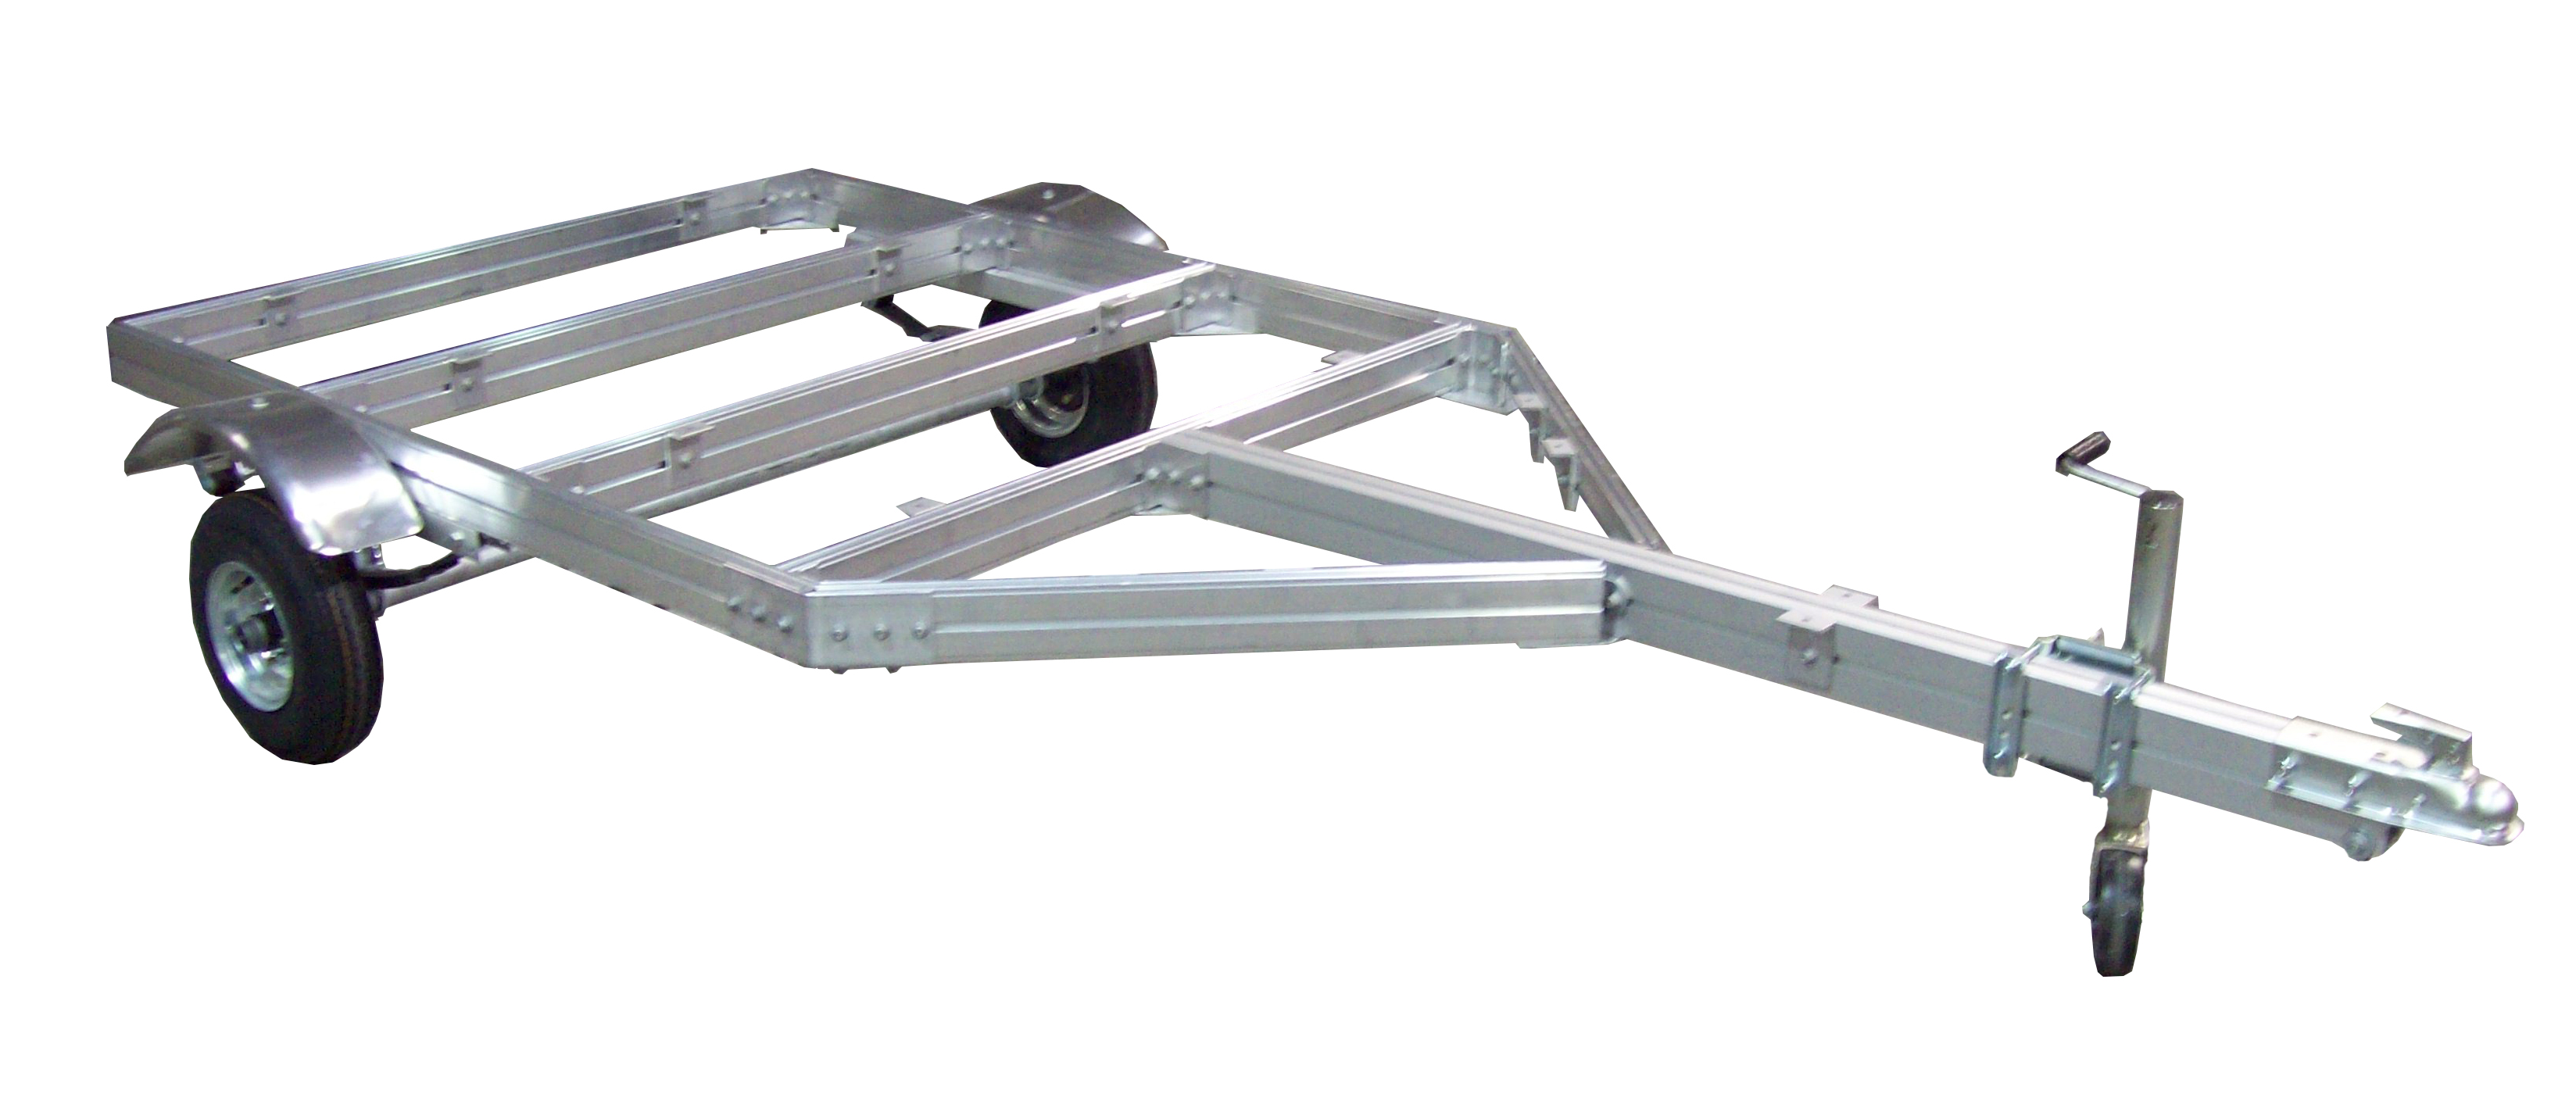 Trailex SUT 1000 CLC Flatbed Trailer Kit